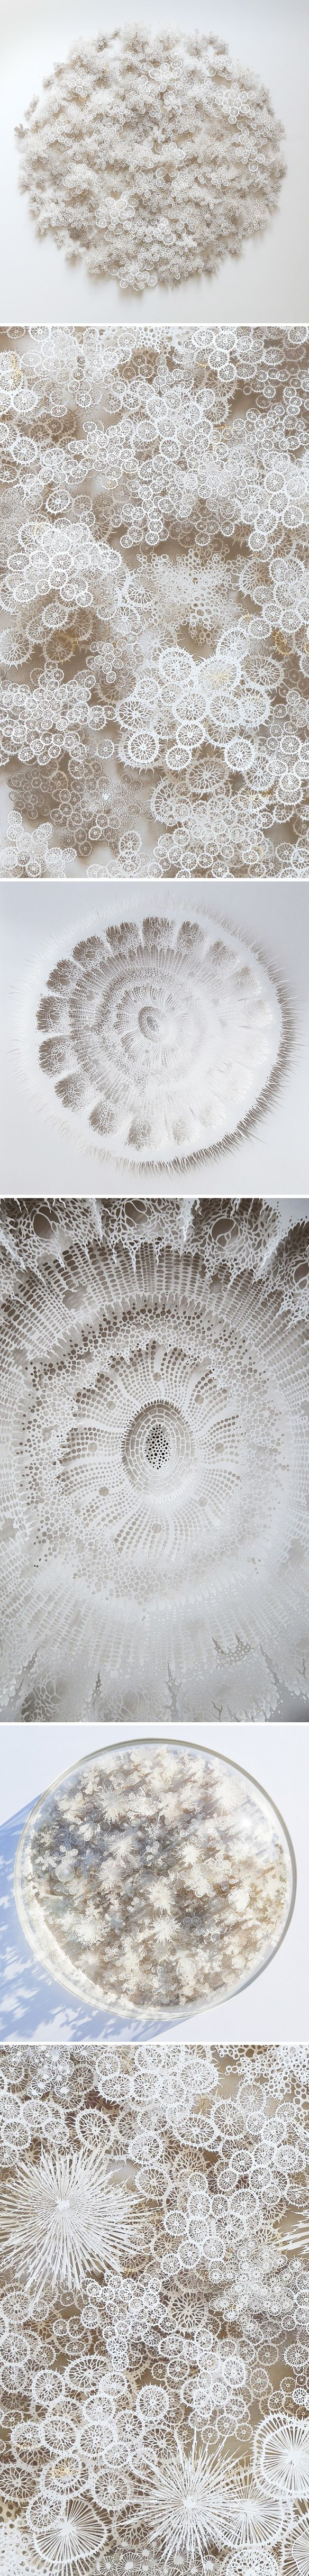 Incredible organic paper cuttings by Rogan Brown…